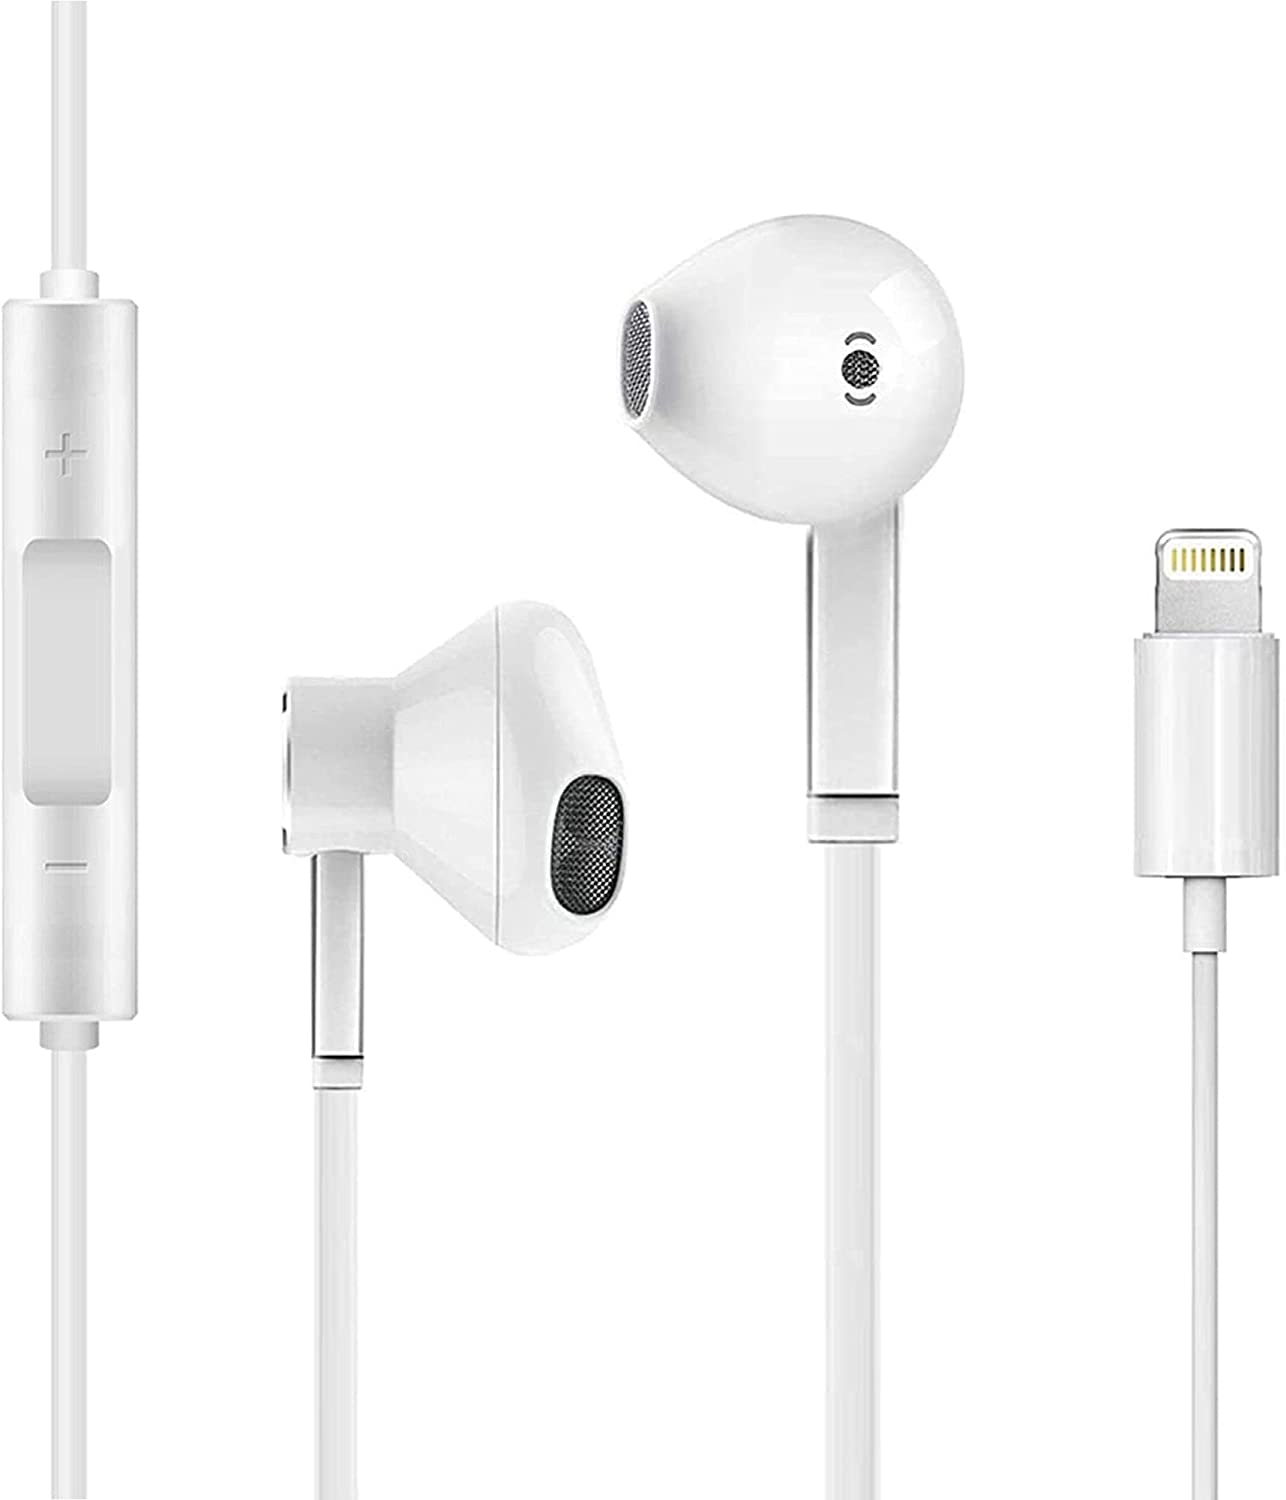 Earbuds Earphones Apple MFi Certified Wired Stereo Sound Headphones for iPhone with Microphone and Volume Control Active Noise Cancellation Compatible with iPhone 11Pro 12 7 8plus X iPod Xs